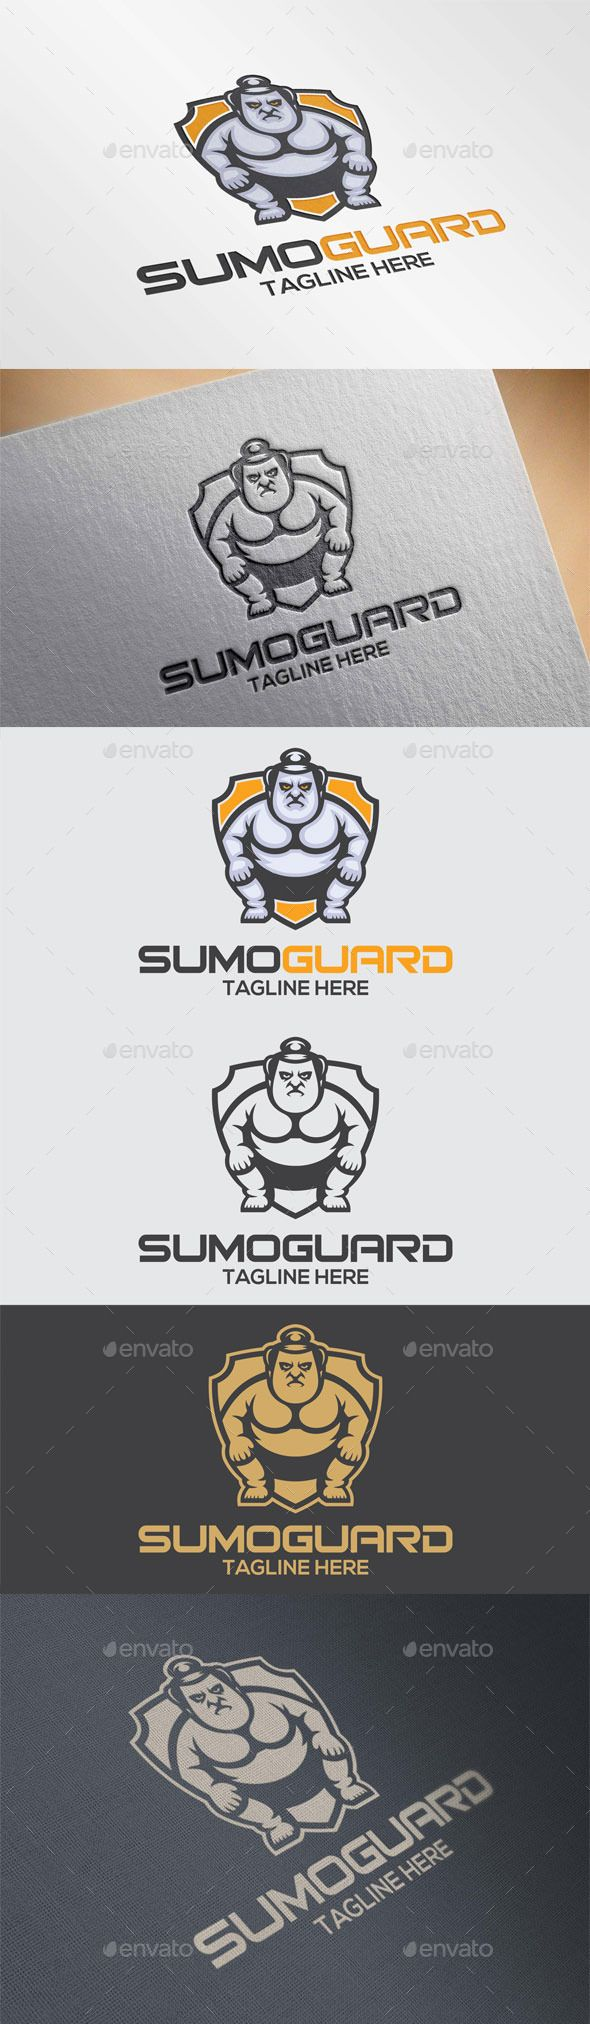 Sumo Guard Logo Template — Vector EPS #power #vector • Available here → https://graphicriver.net/item/sumo-guard-logo-template/12017717?ref=pxcr